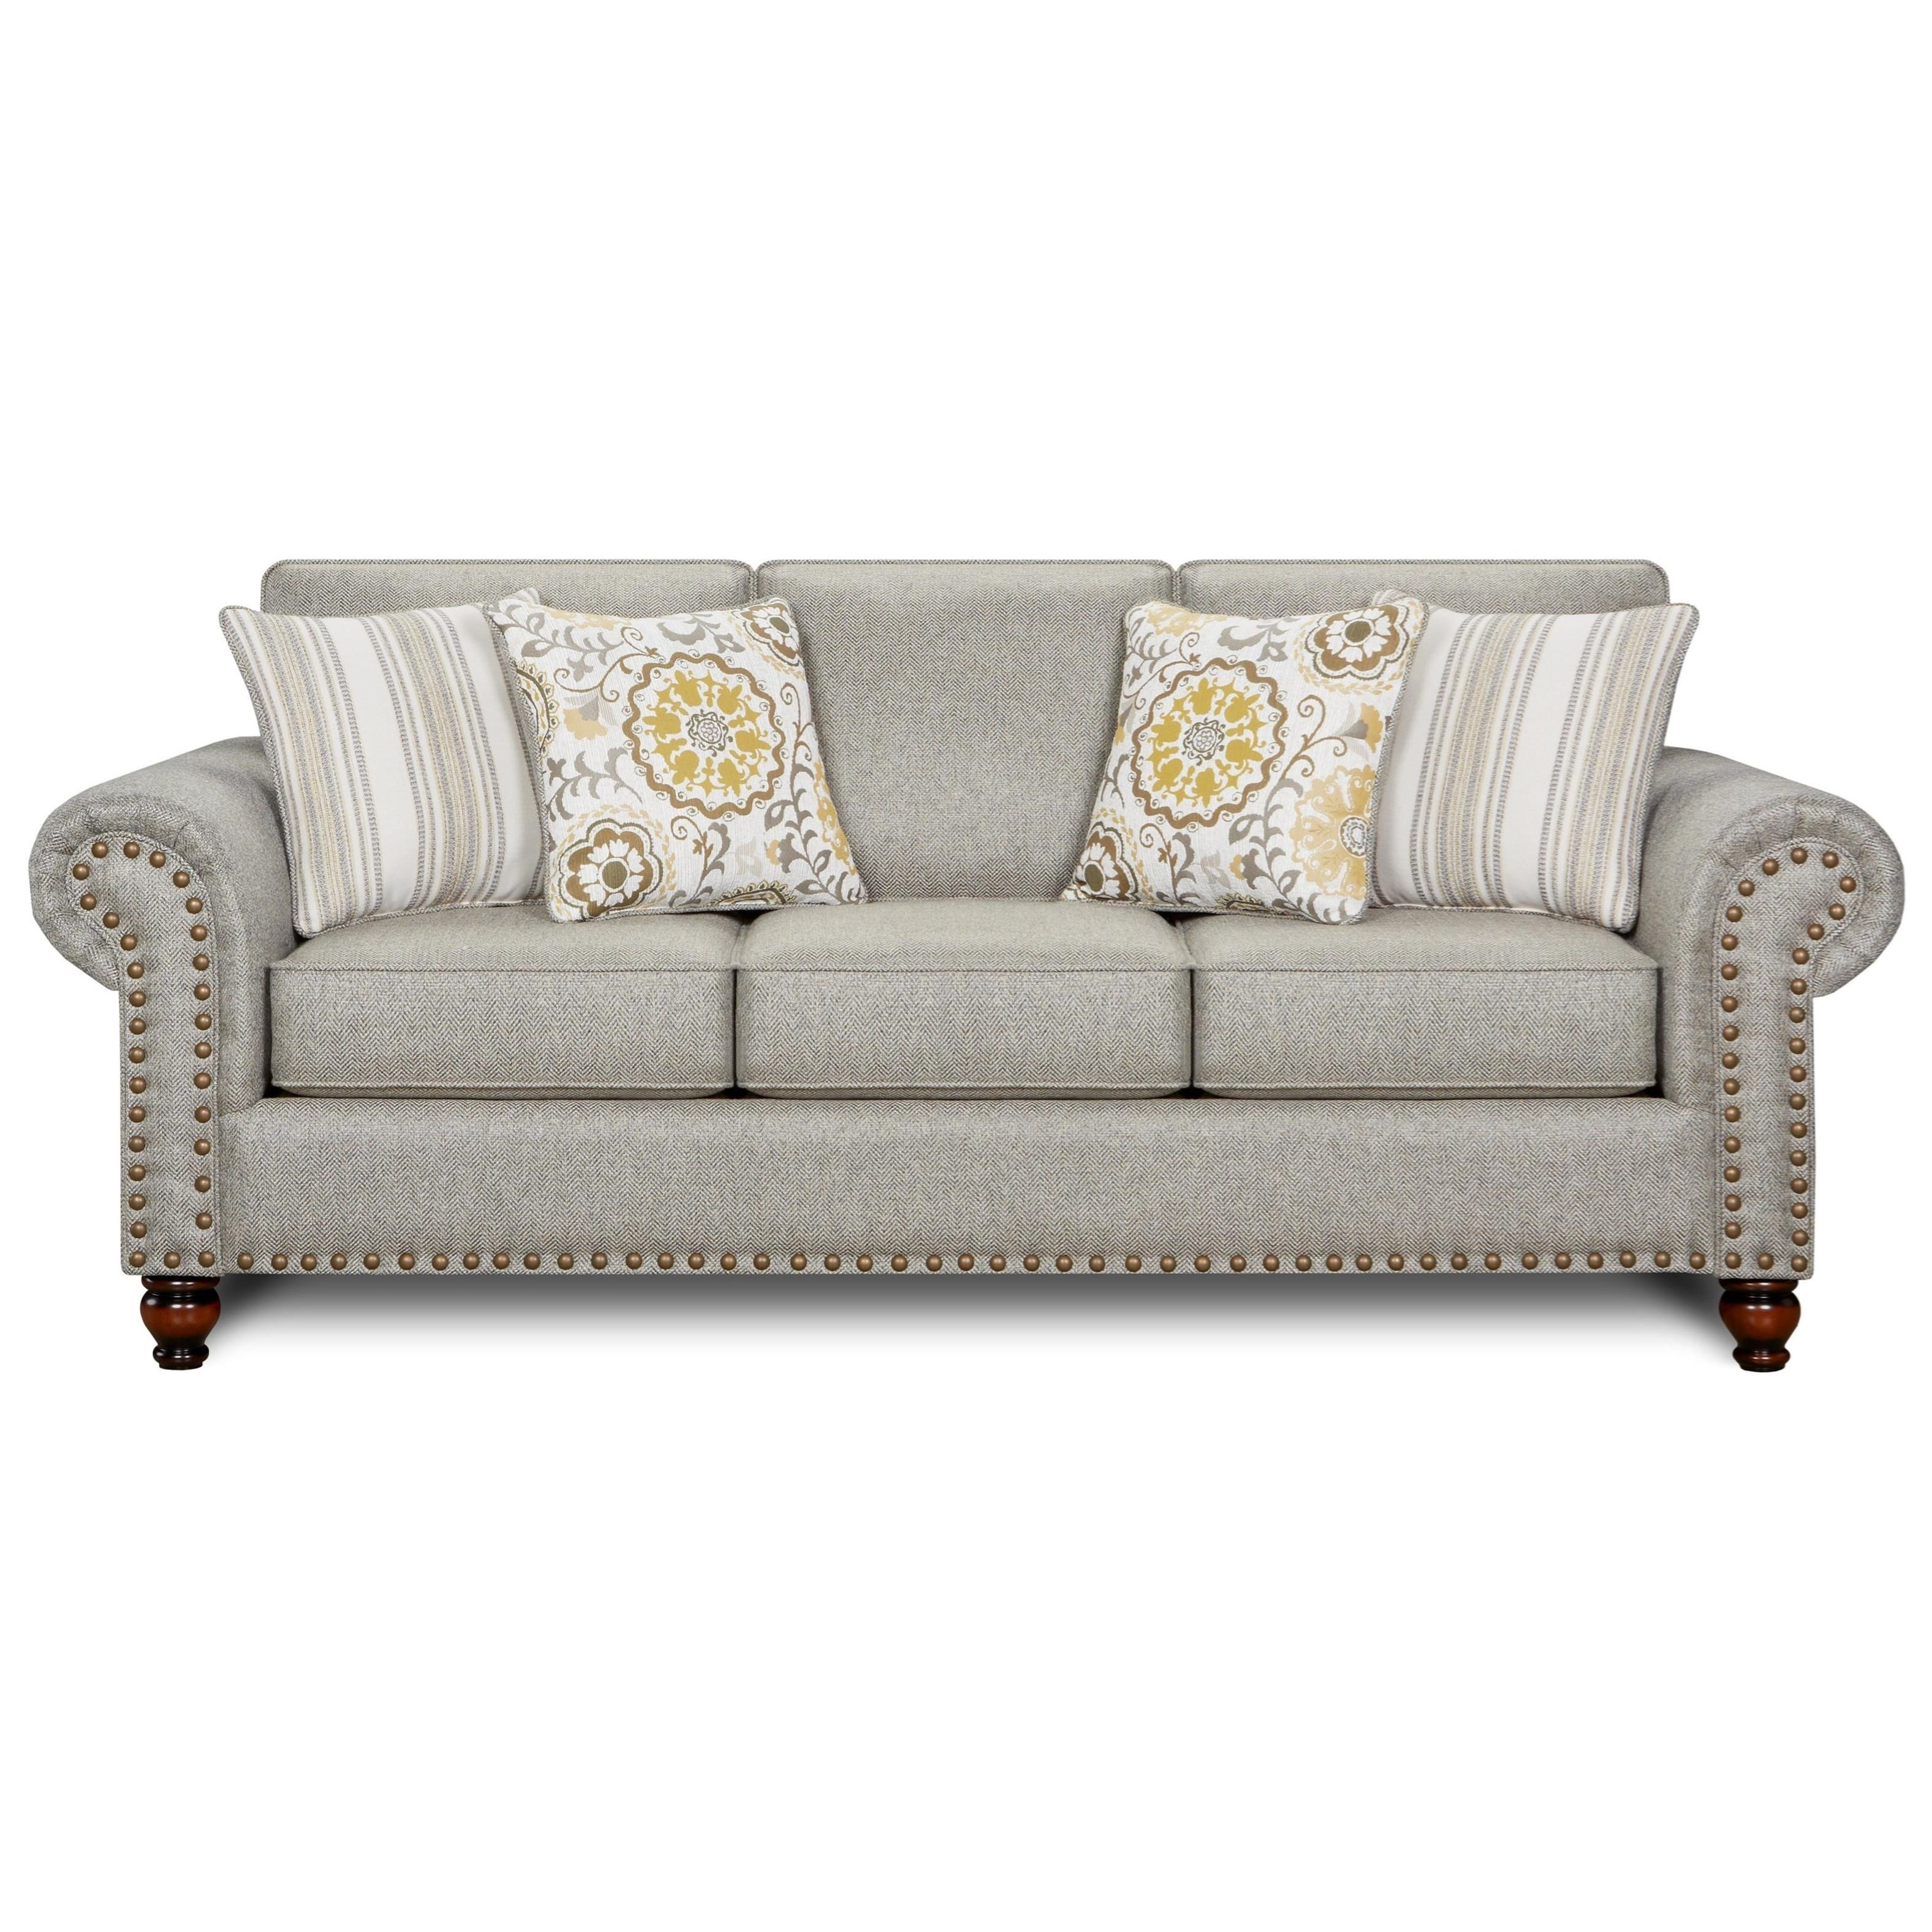 3110 Sofa by Fusion Furniture at Furniture Superstore - Rochester, MN